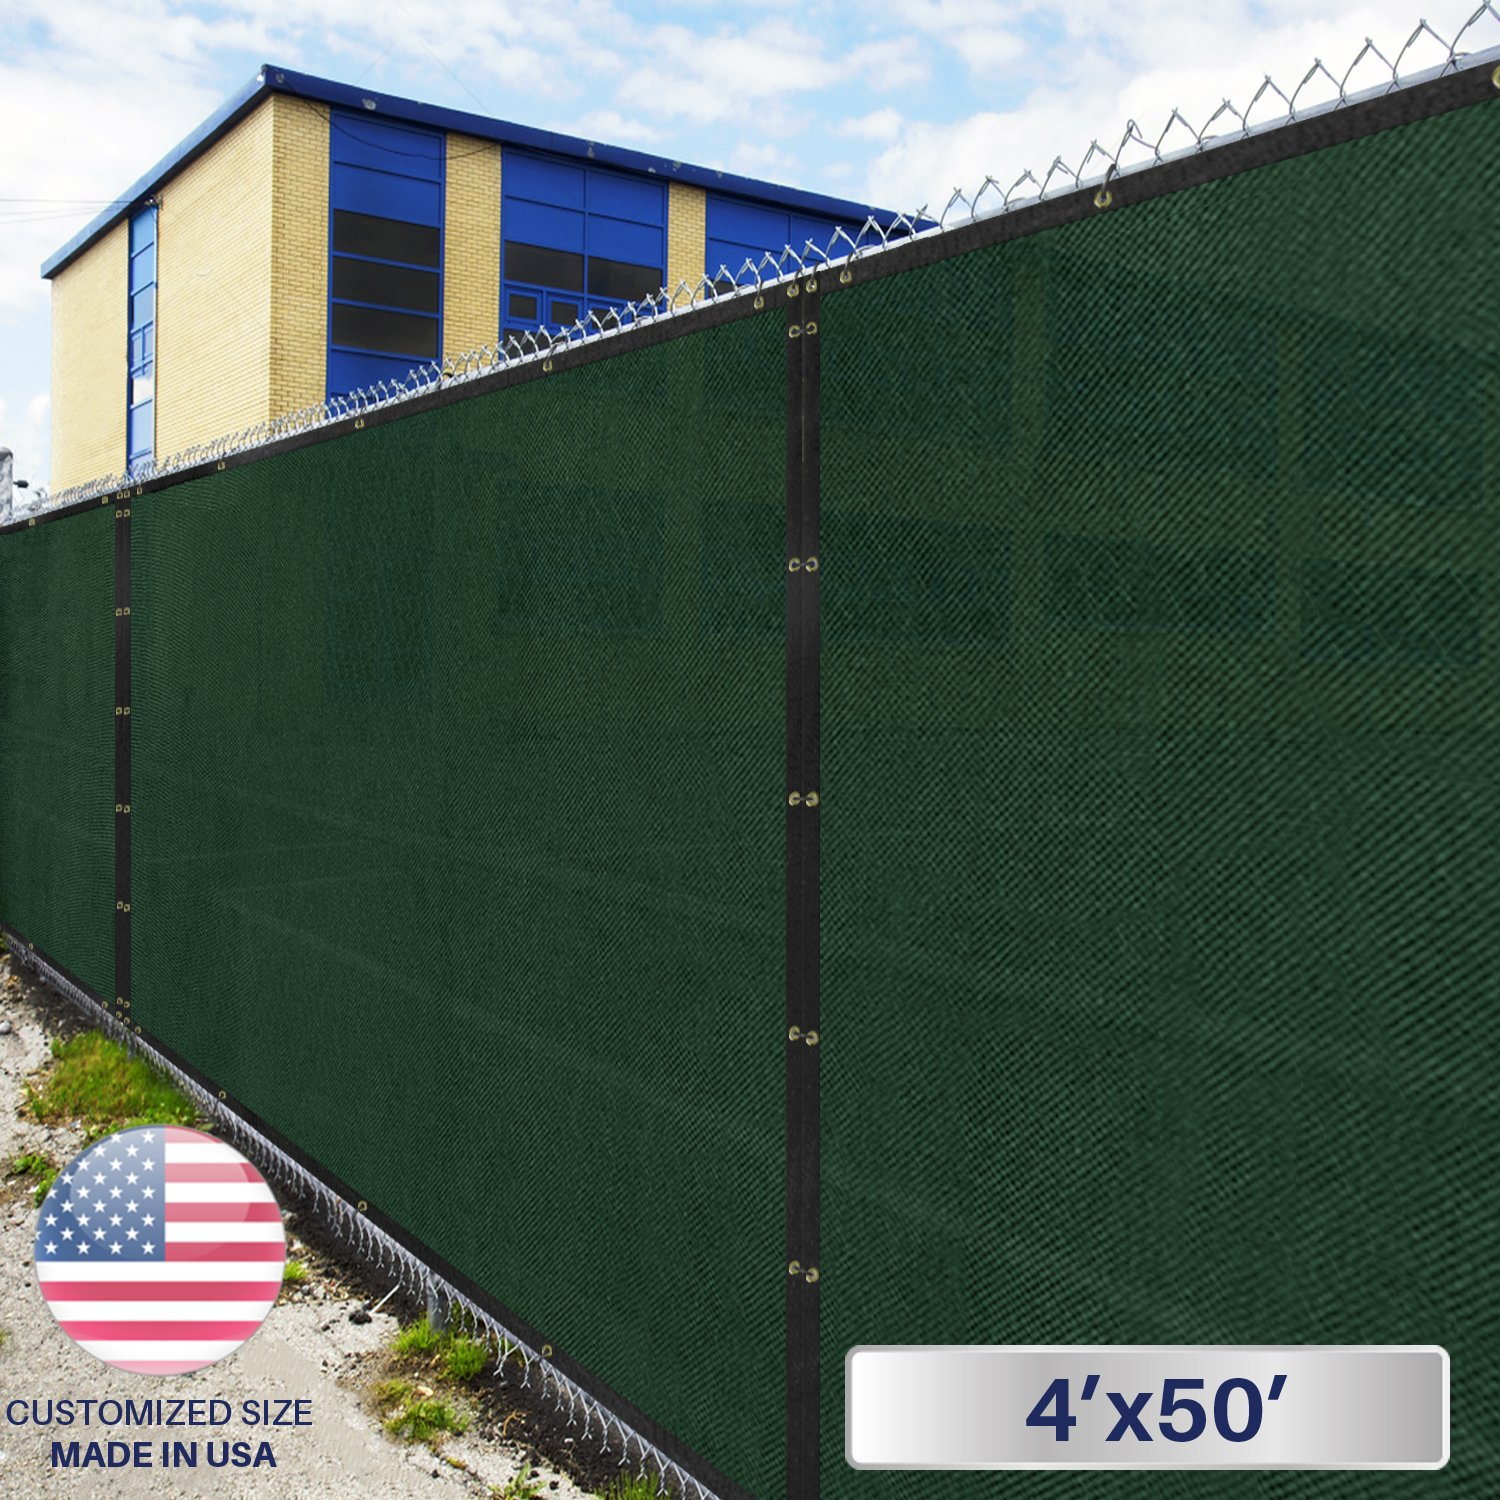 Windscreen4less Heavy Duty Privacy Screen Fence in Color Solid Green 4' x 50' Brass Grommets w/3-Year Warranty 150 GSM (Customized Sizes Available) by Windscreen4less (Image #1)